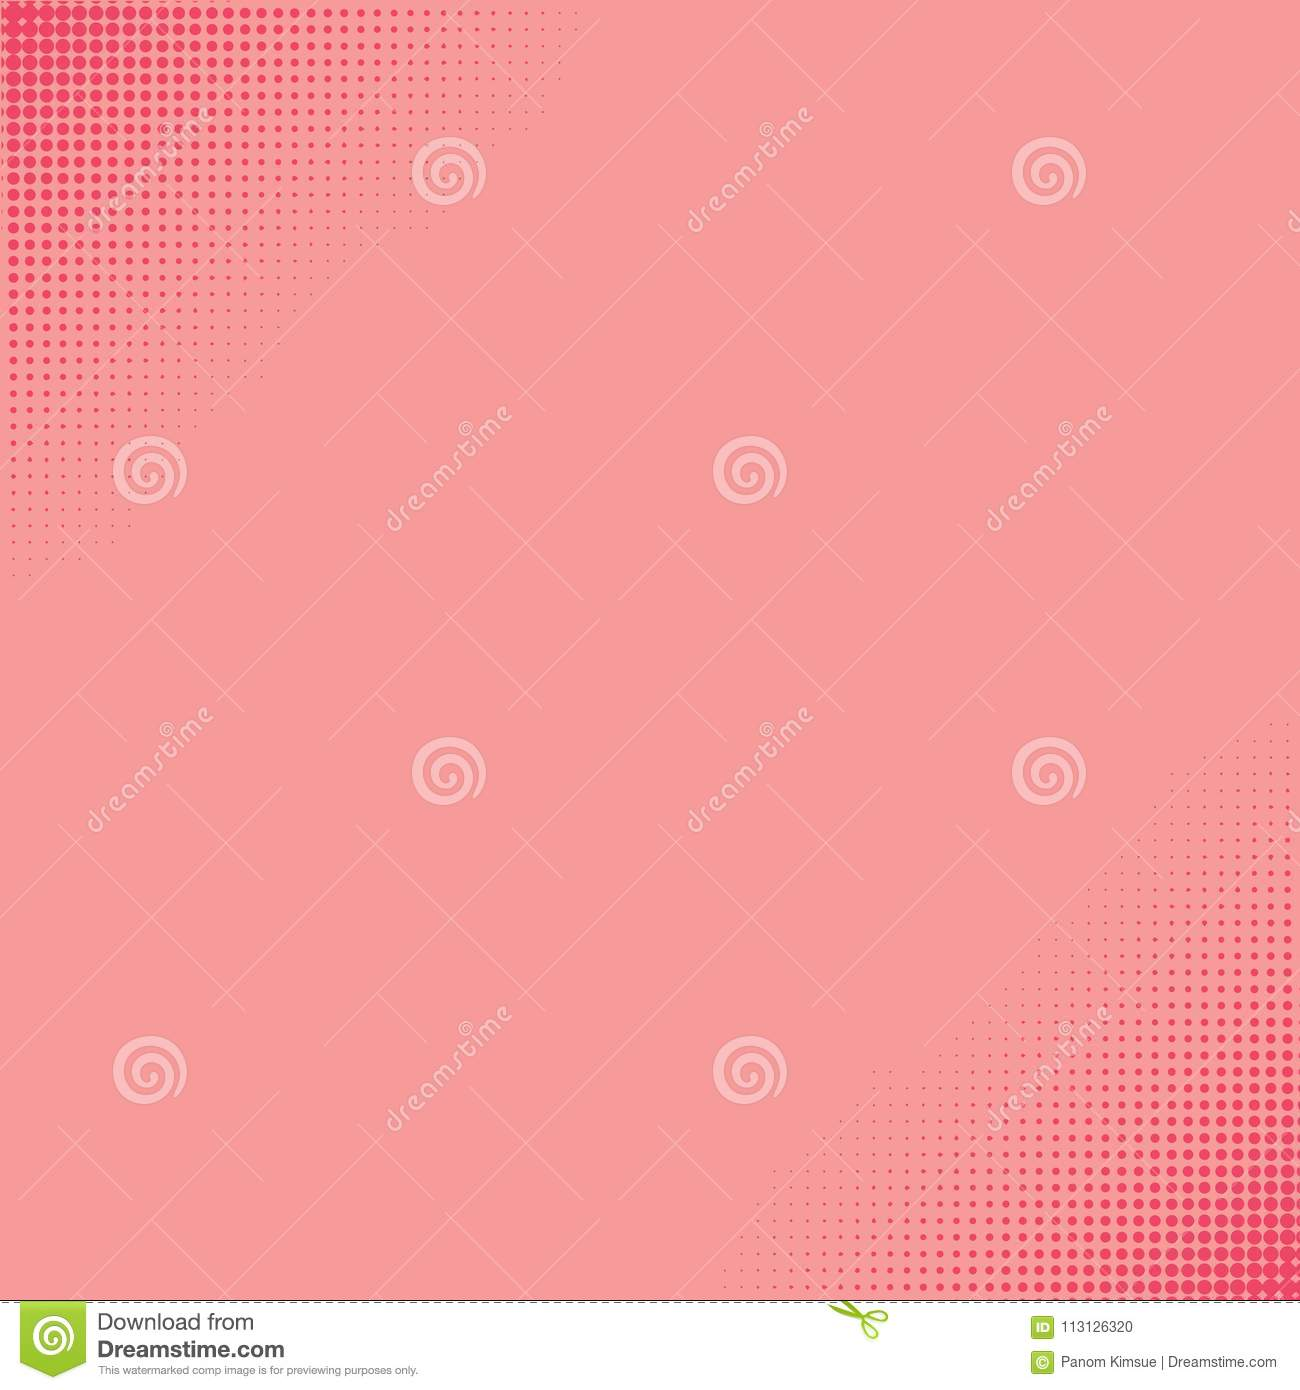 abstract halftone pattern background design for web banners, posters